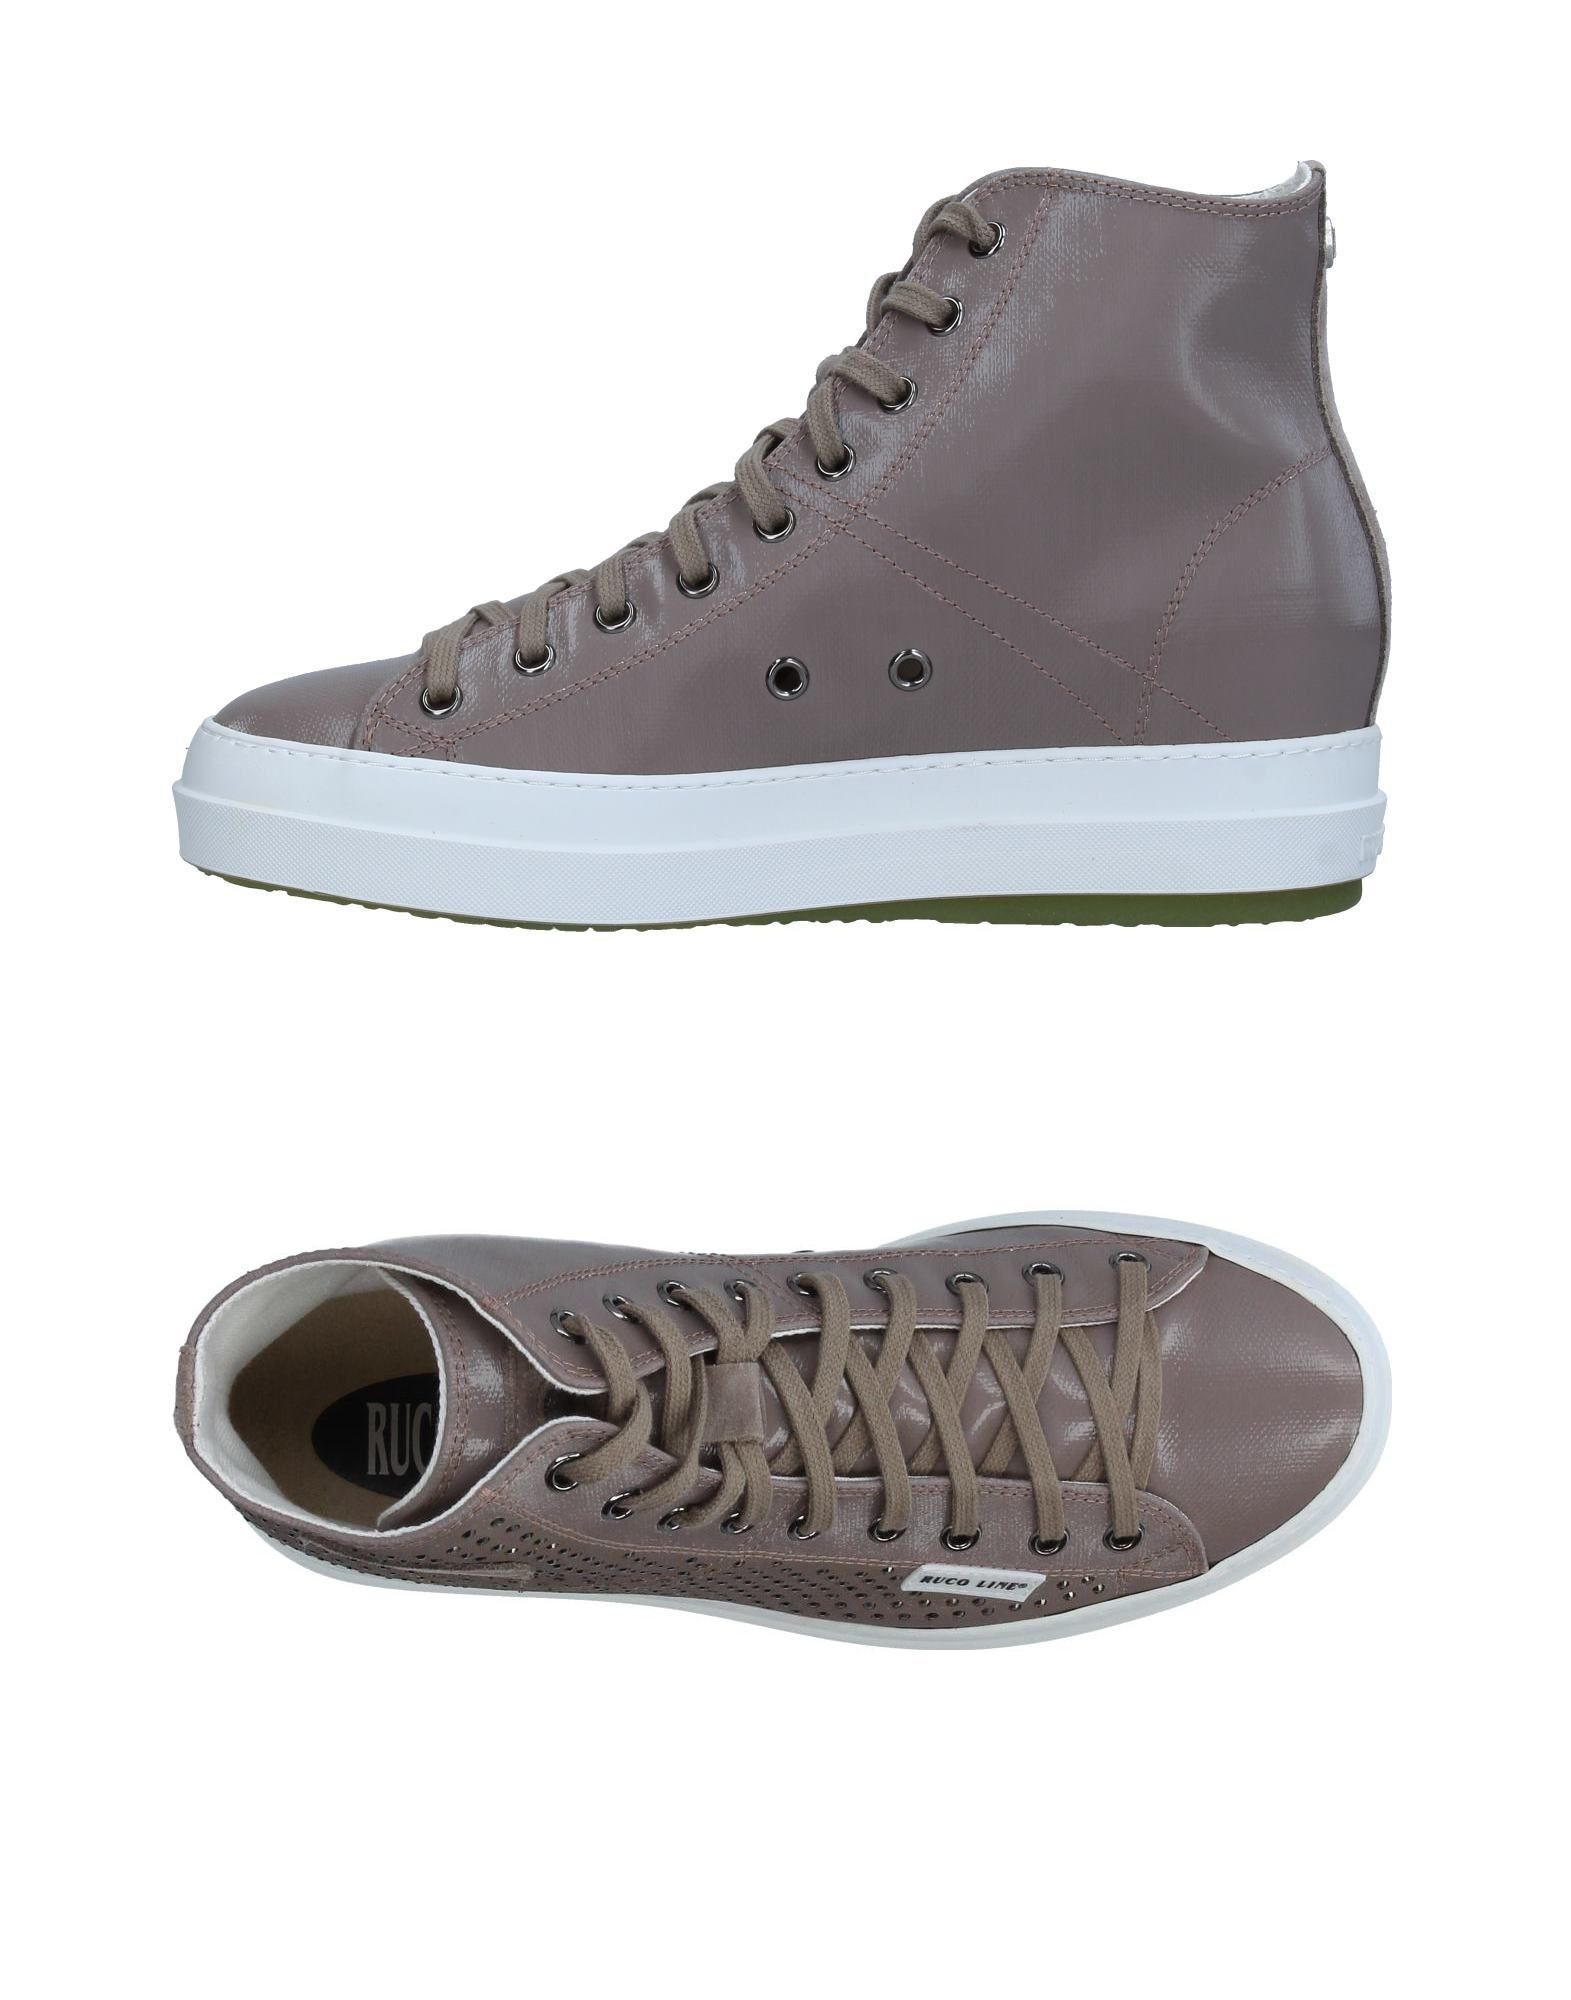 Ruco Line Sneakers 11334431OW Damen  11334431OW Sneakers Gute Qualität beliebte Schuhe 06c410